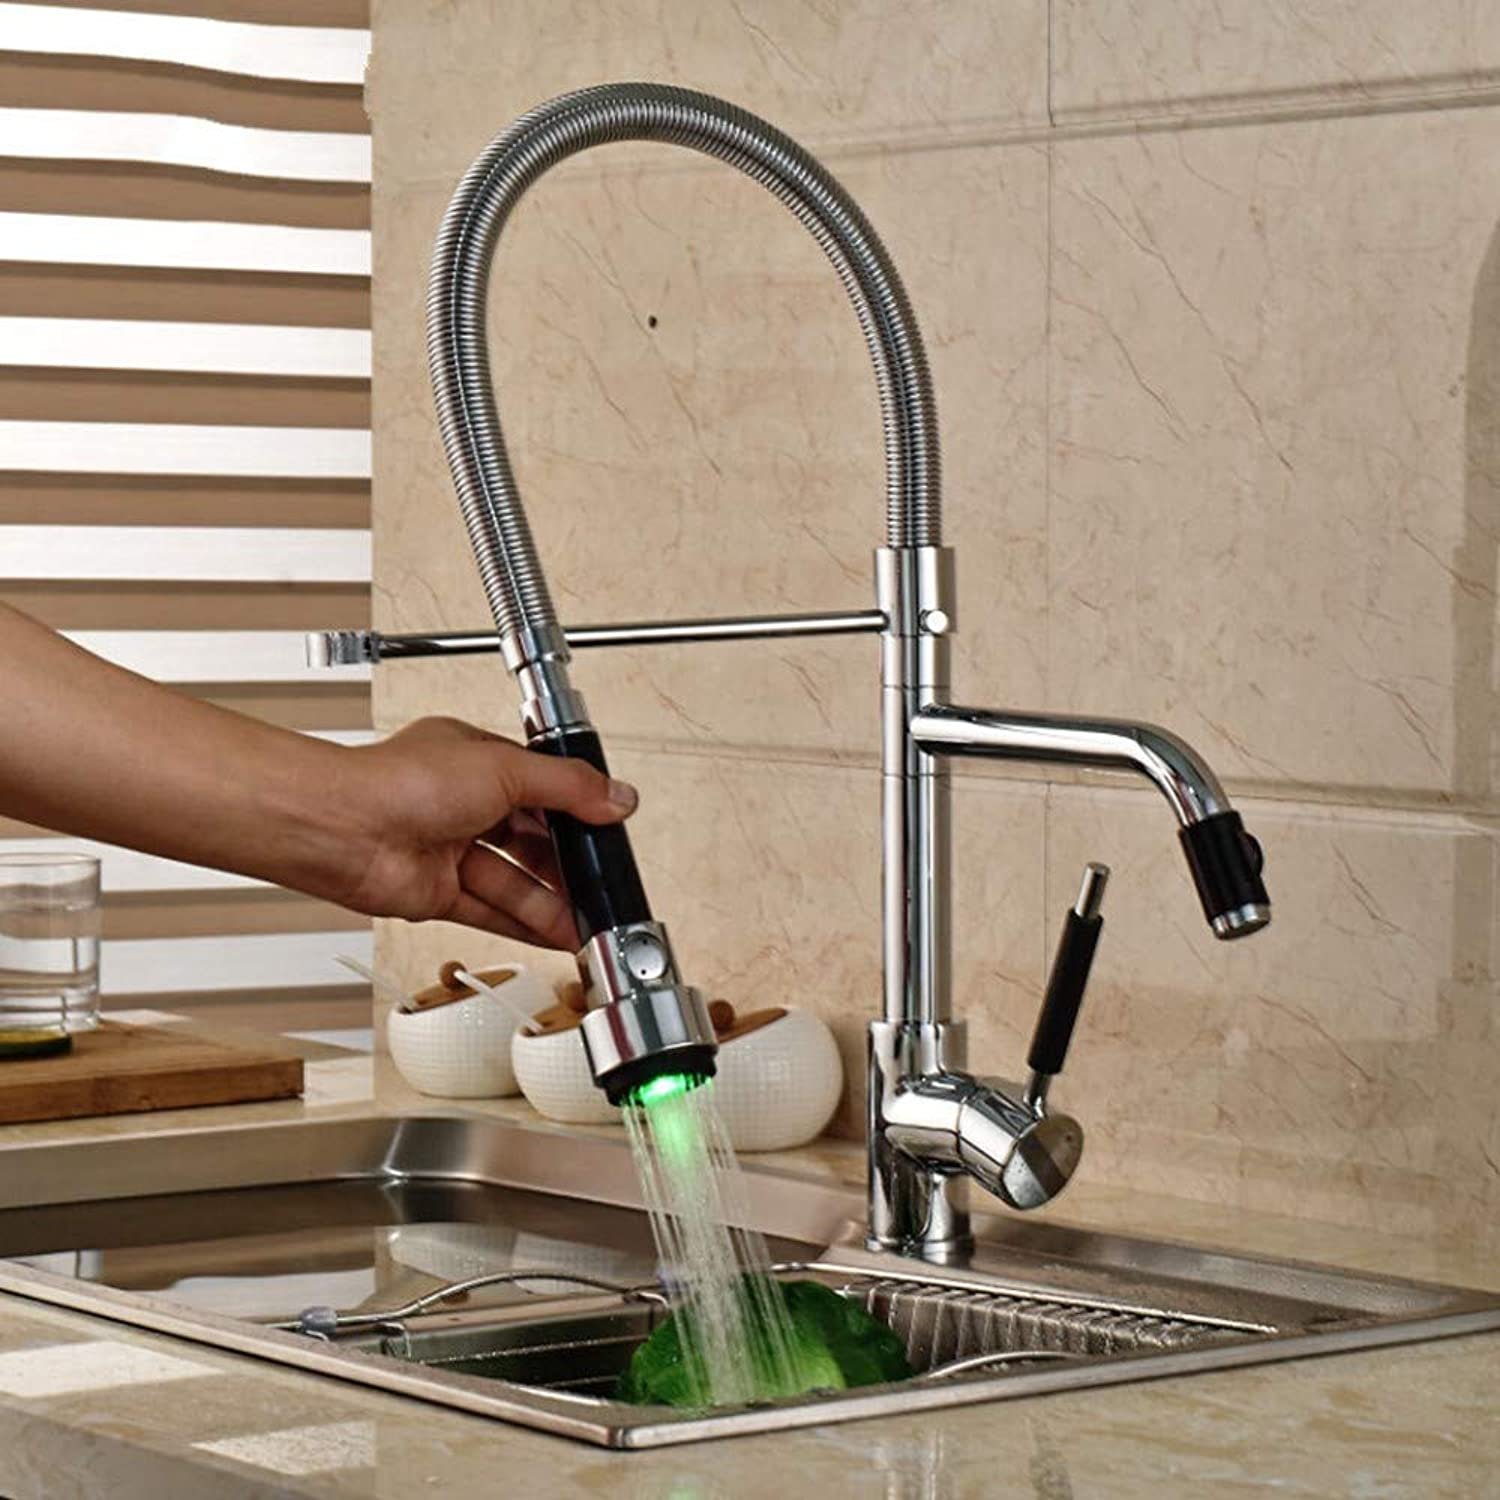 KUNHAN Kitchen Sink Faucet Tap Led Light Chrome Kitchen Single Handle Mixer Faucet Inssizetion Hot And Cold Water Faucet Faucet